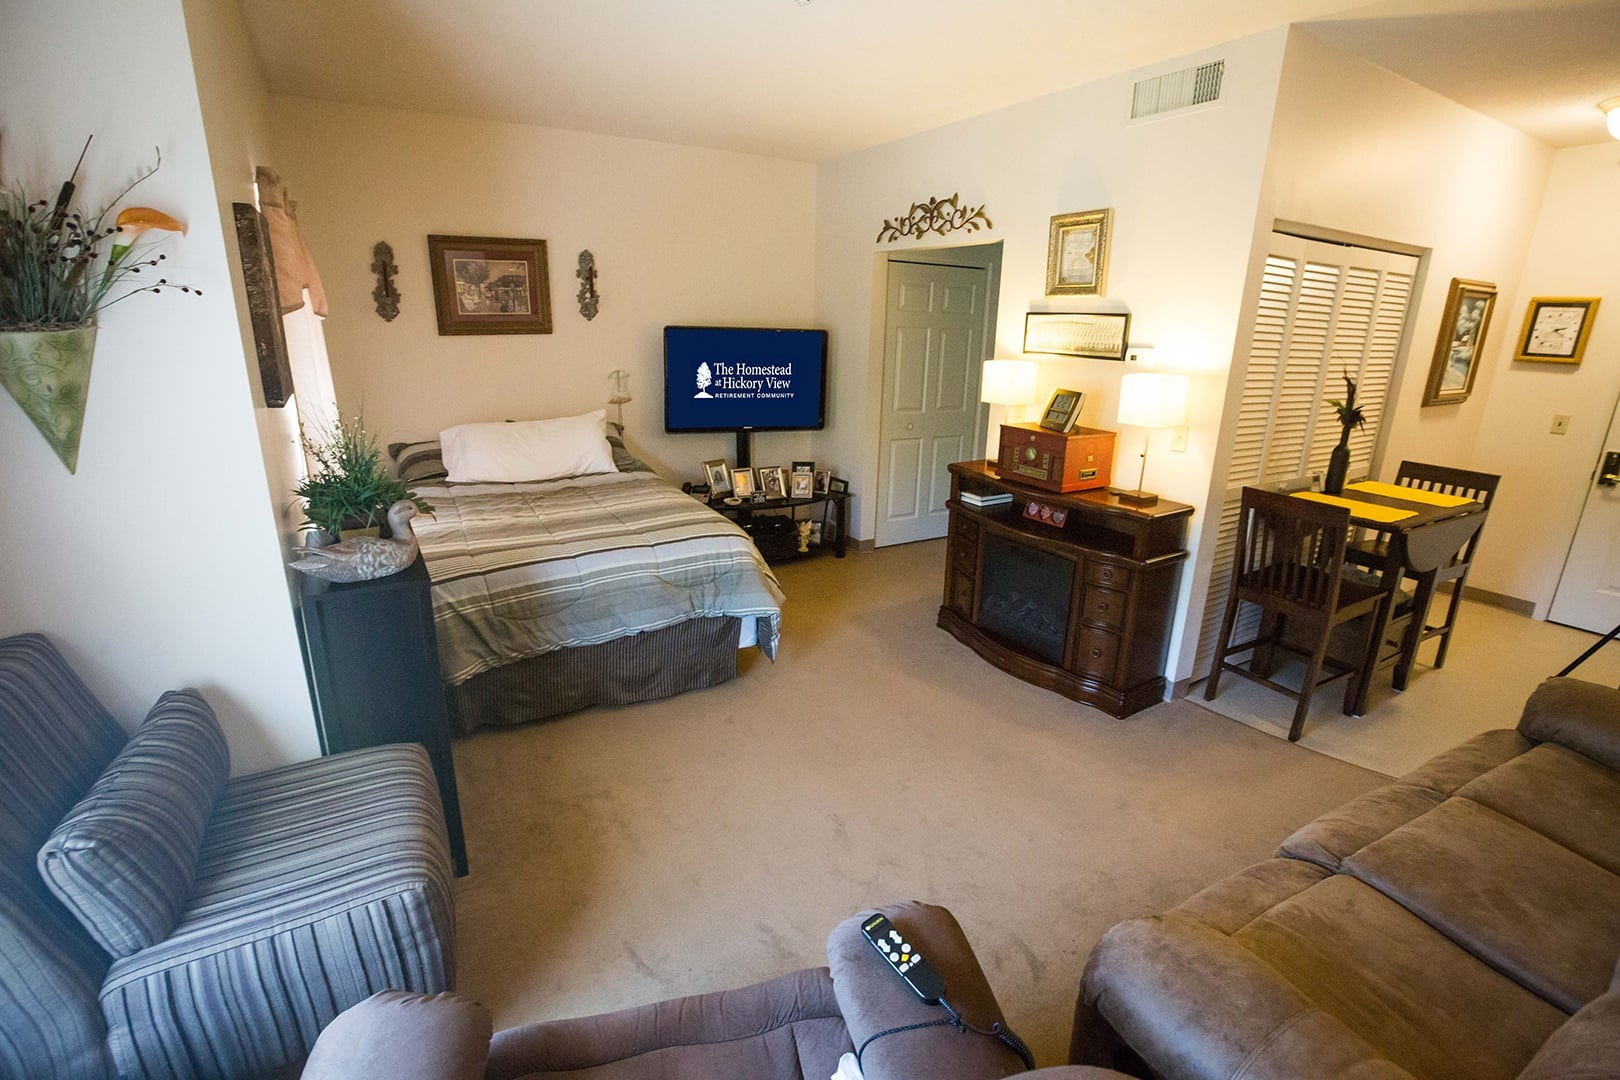 Studio apartment at The Homestead at Hickory View Retirement Community